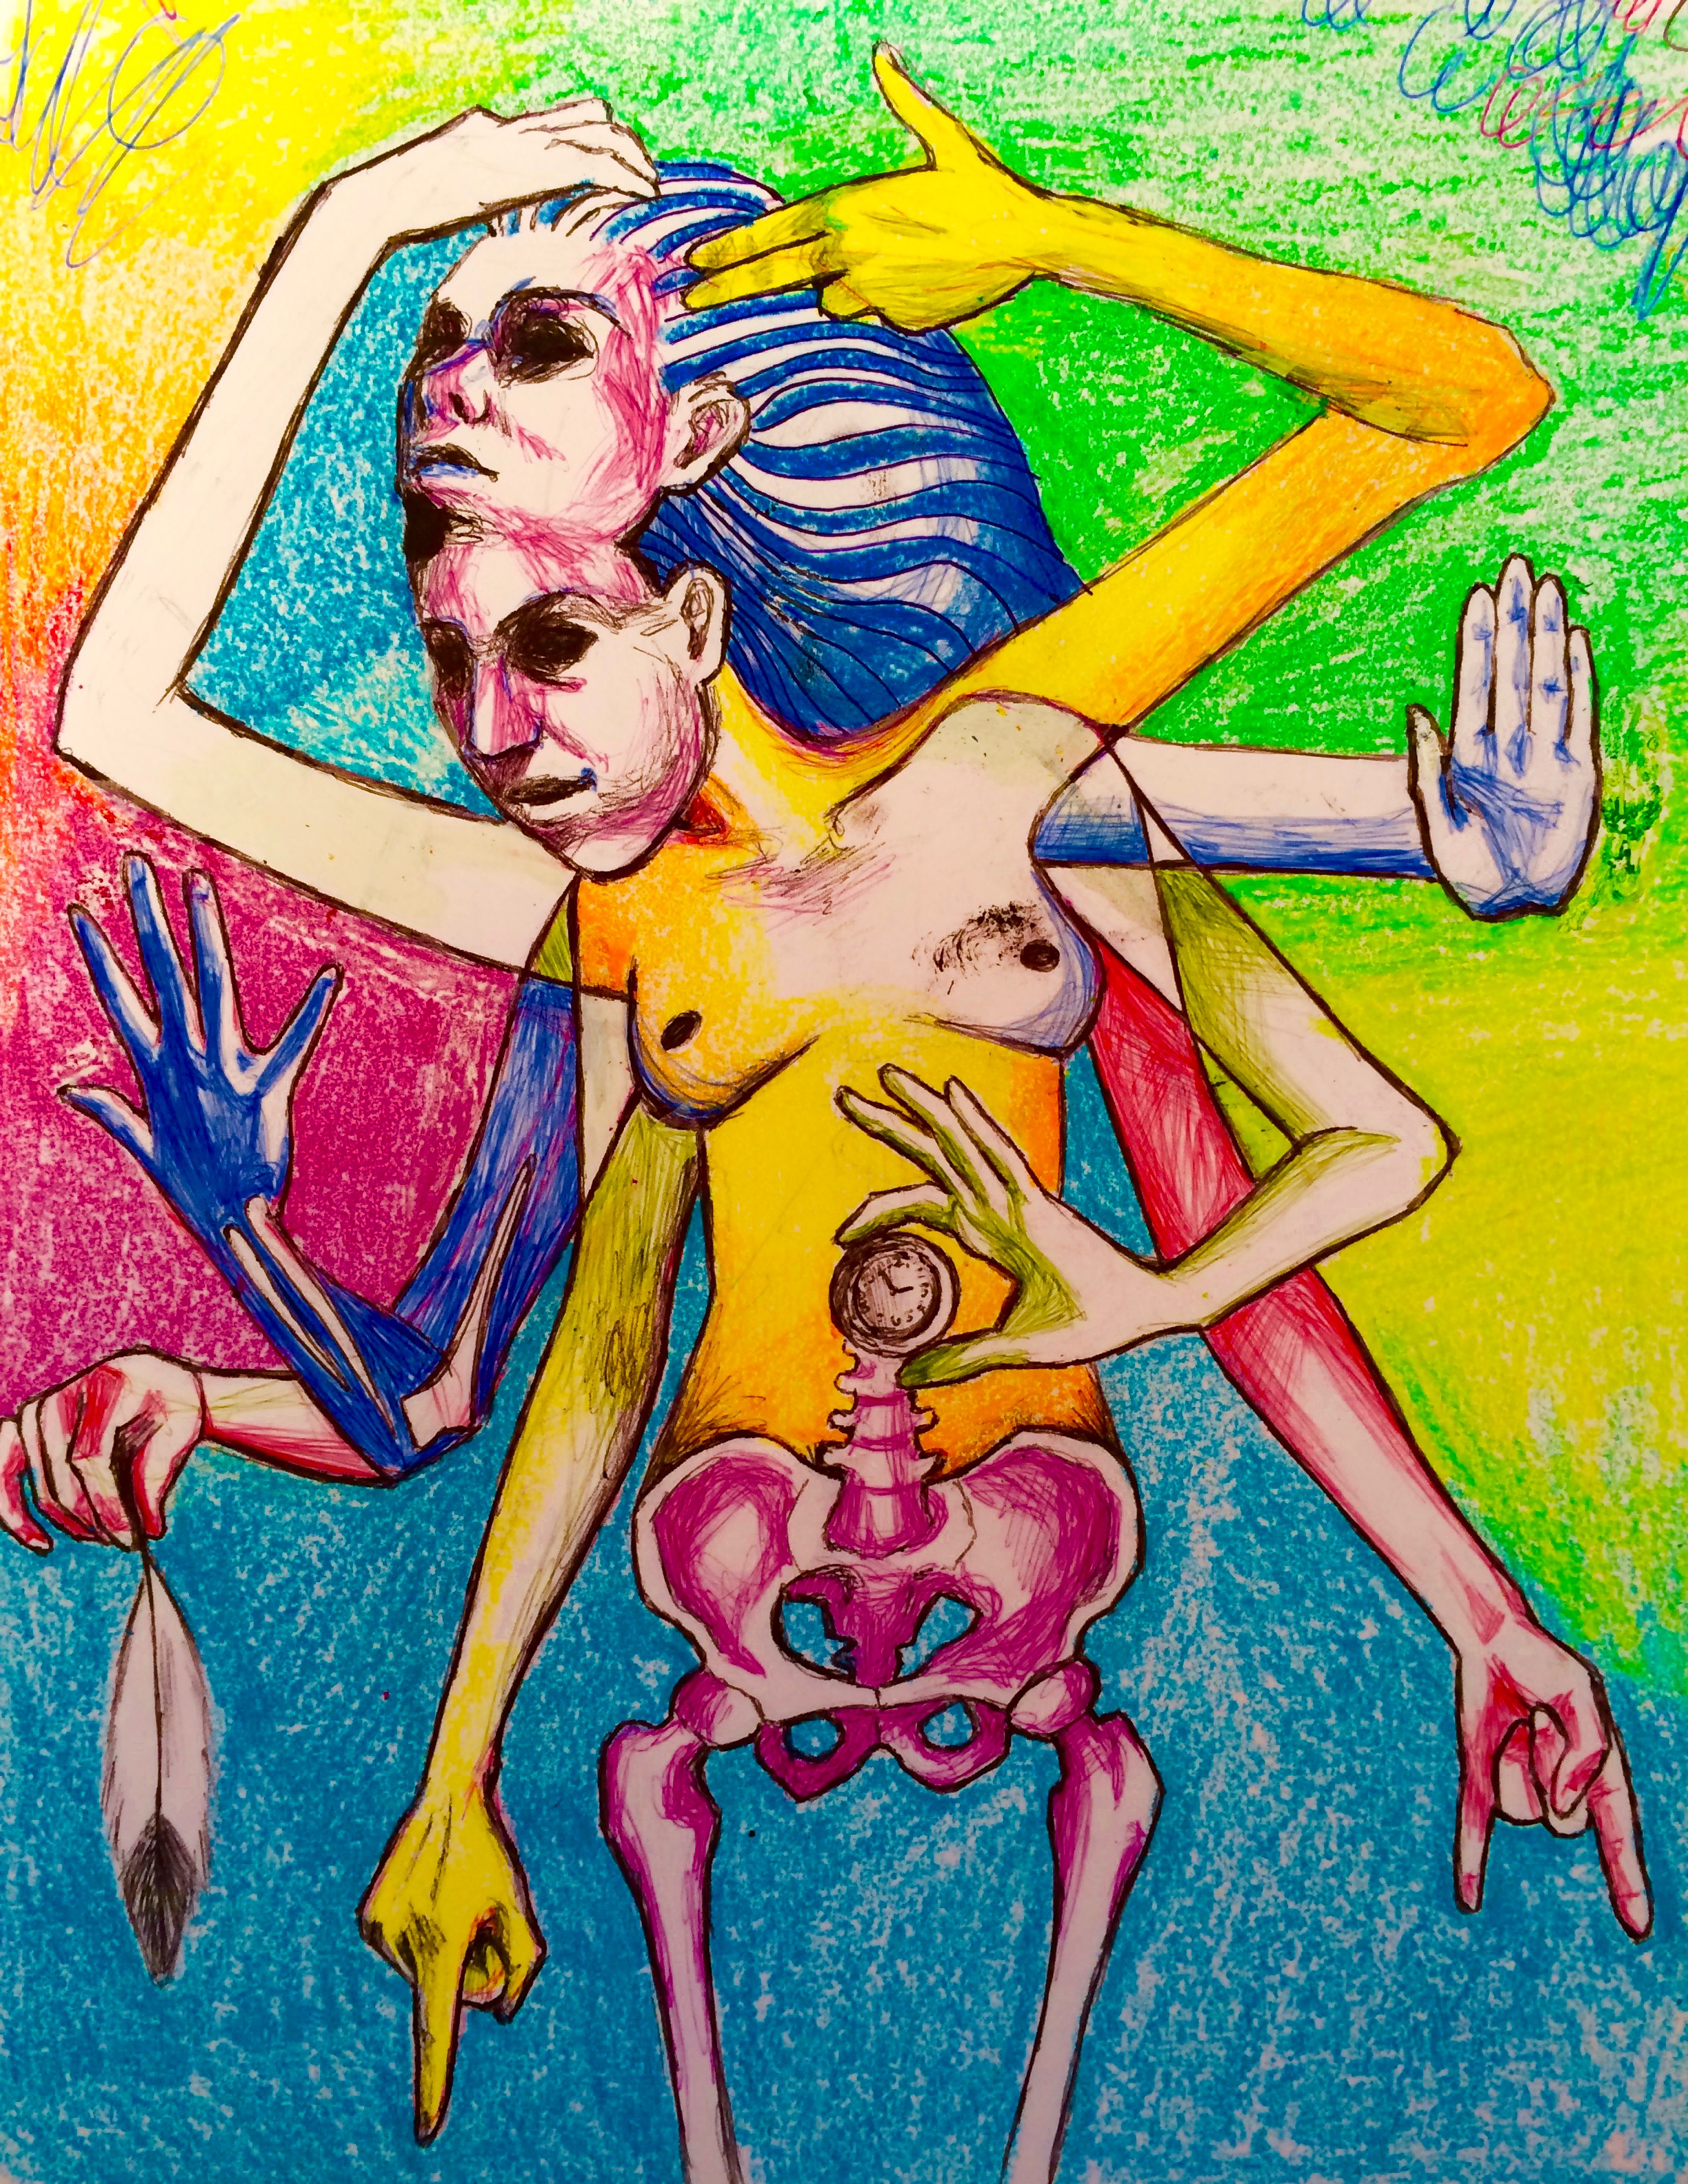 Untitled 2015, multicolored pen & crayons